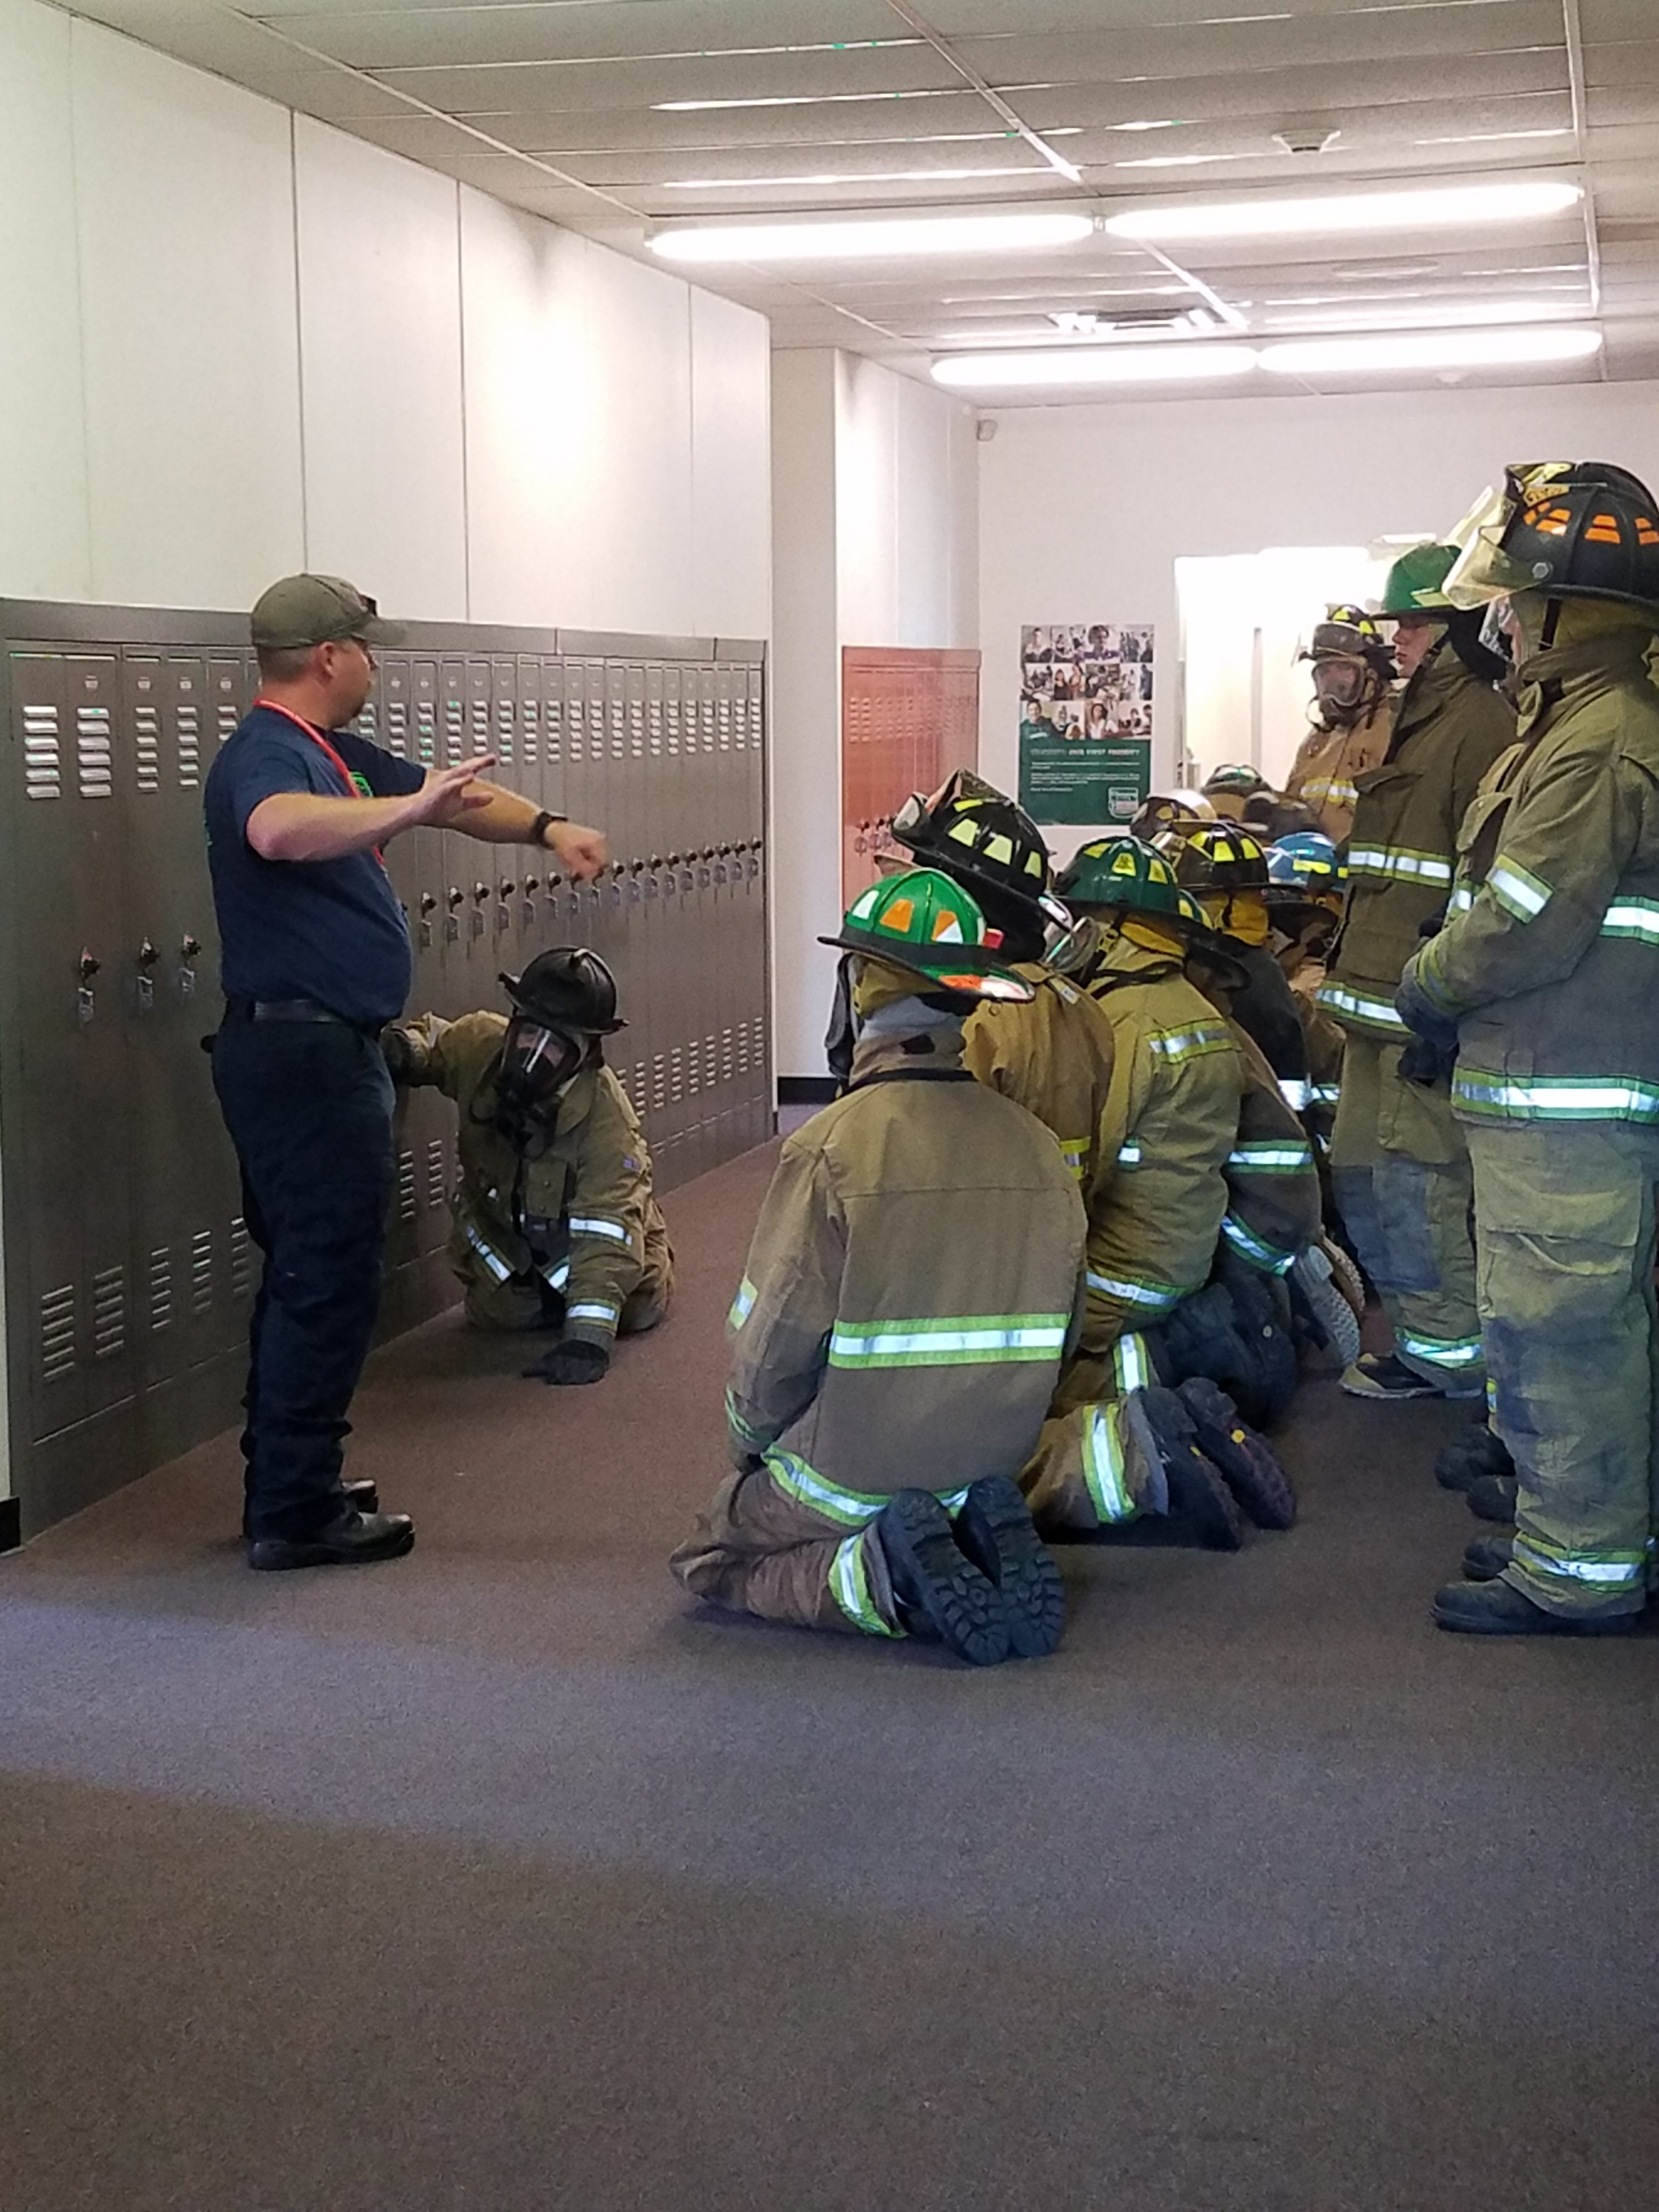 fire class in hall